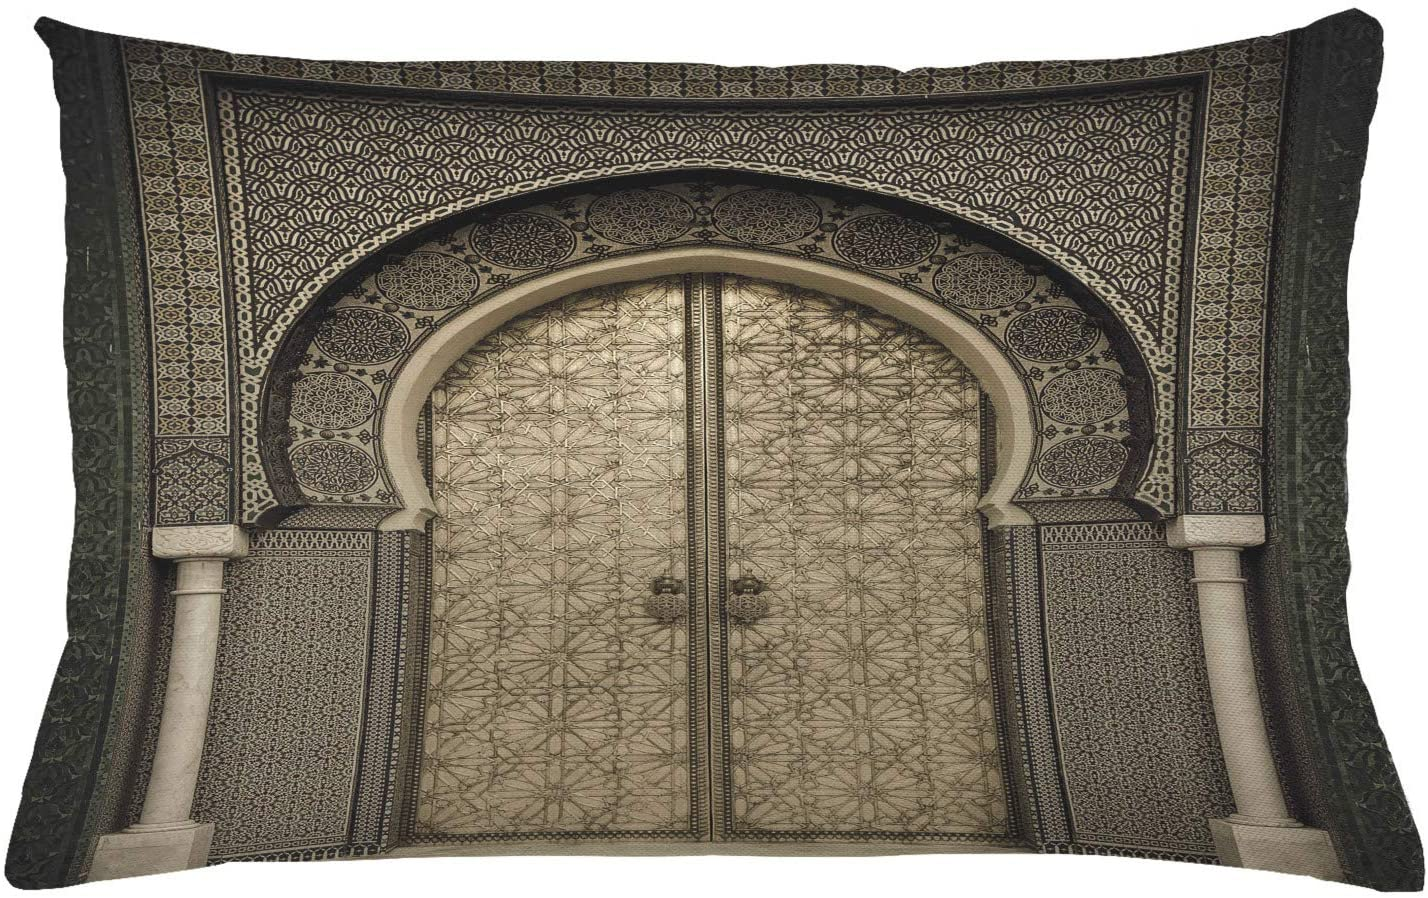 Ambesonne Moroccan Throw Pillow Cushion Cover, Aged Gate Geometric Pattern Doorway Design Entrance Architectural Oriental Style, Decorative Rectangle Accent Pillow Case, 26